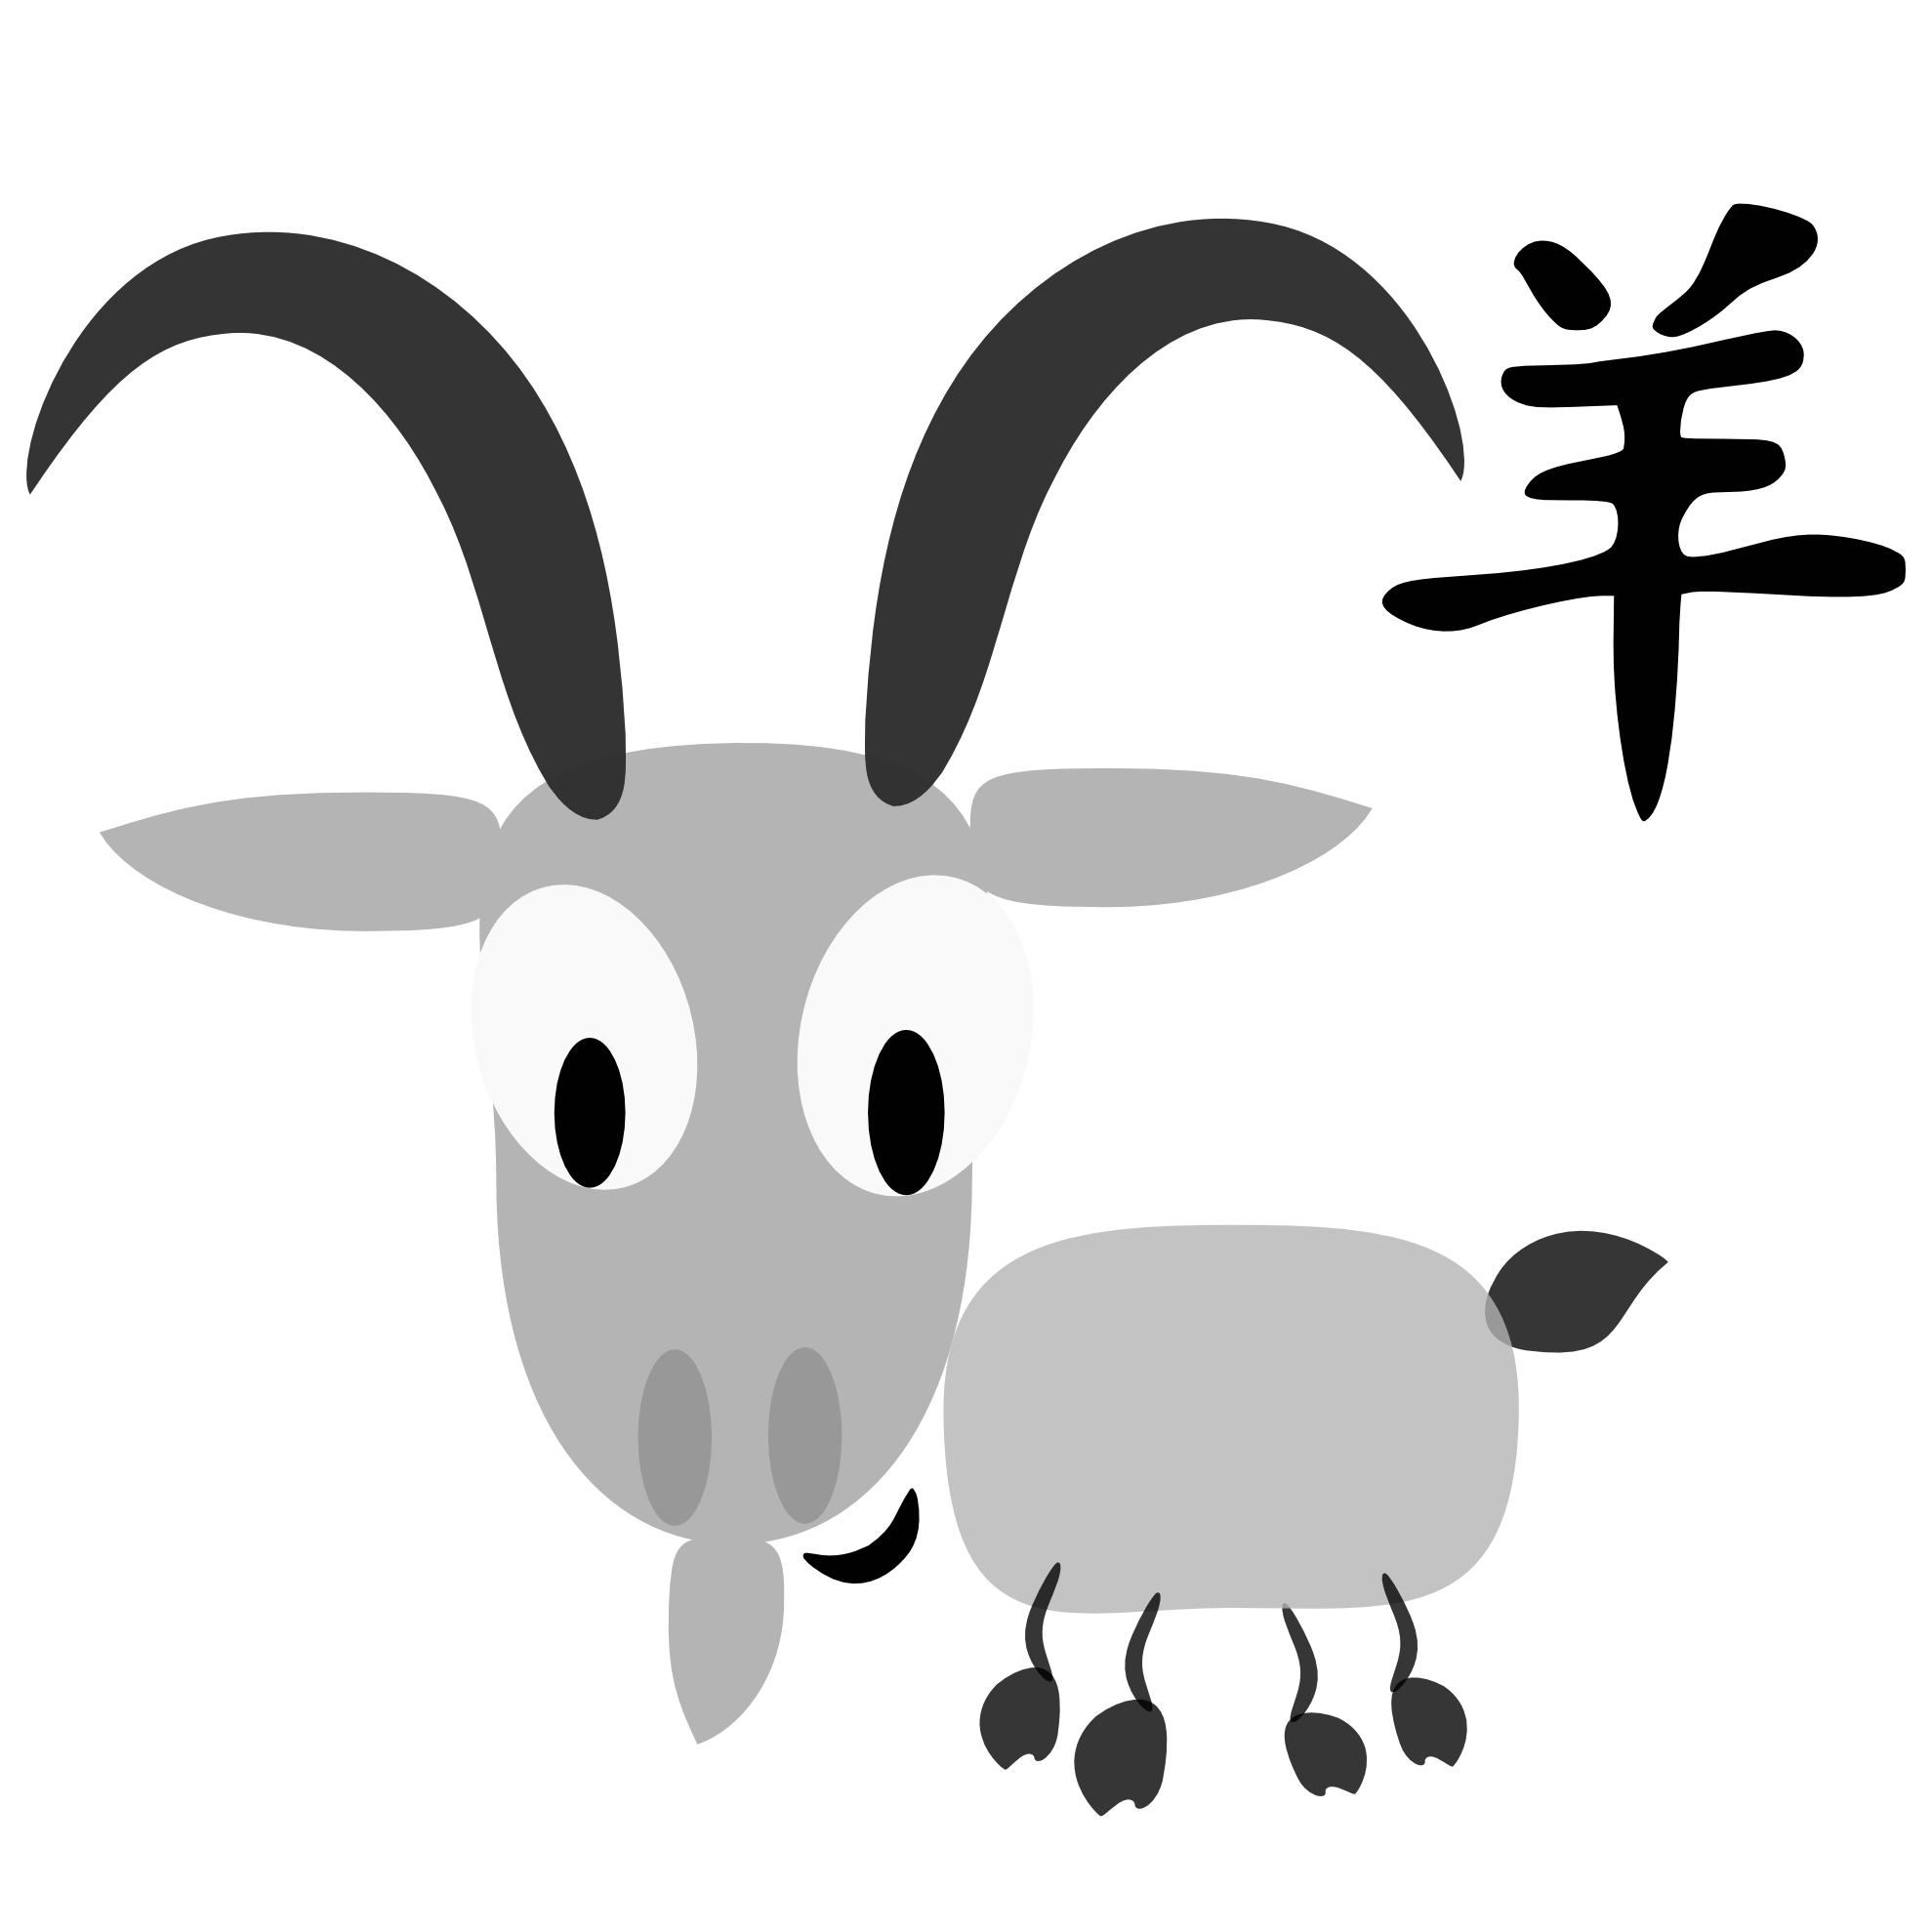 Chinese horoscope sign character. Goat clipart horns